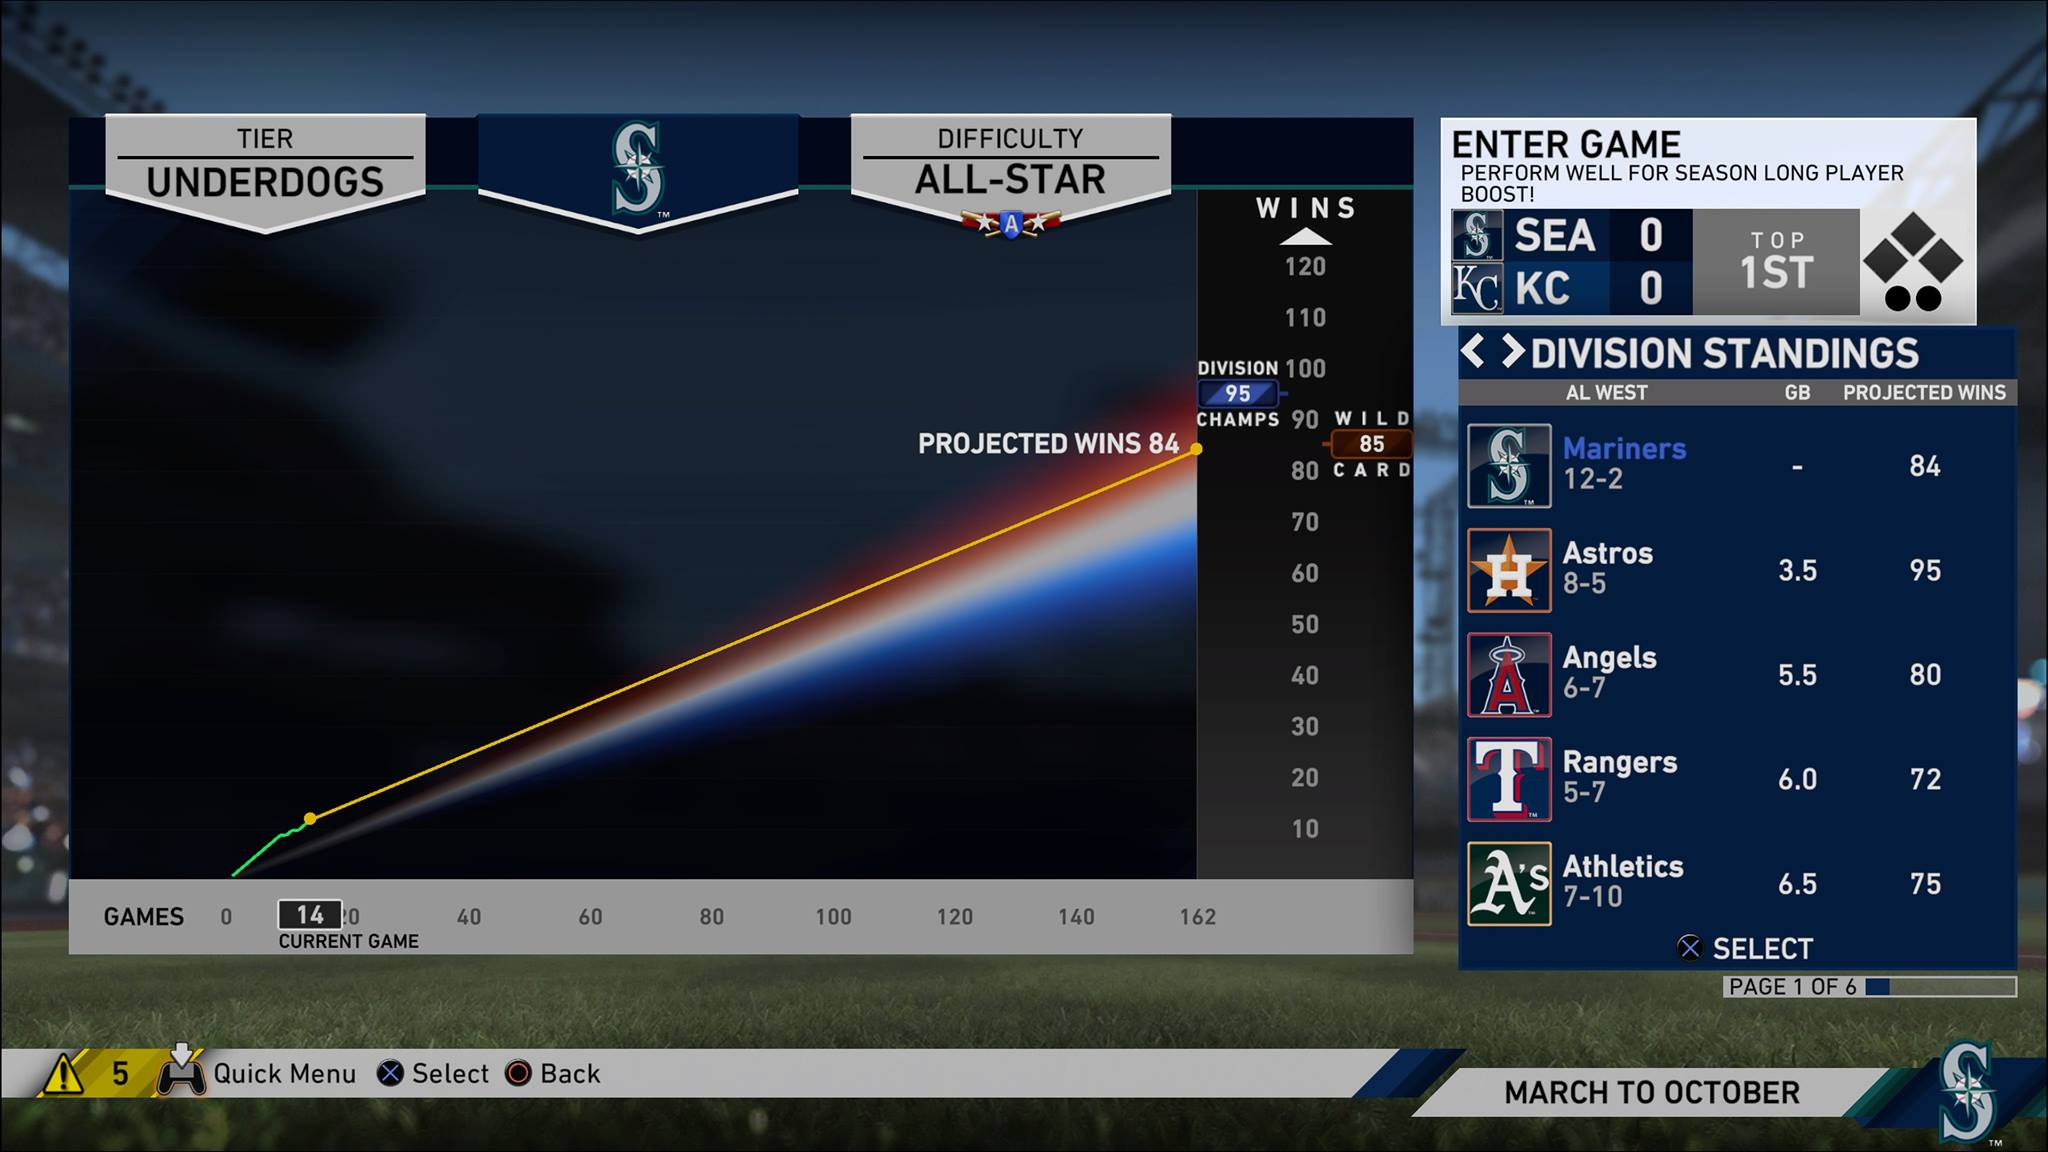 MLB The Show 19 Patch 1.06 Patch notes available